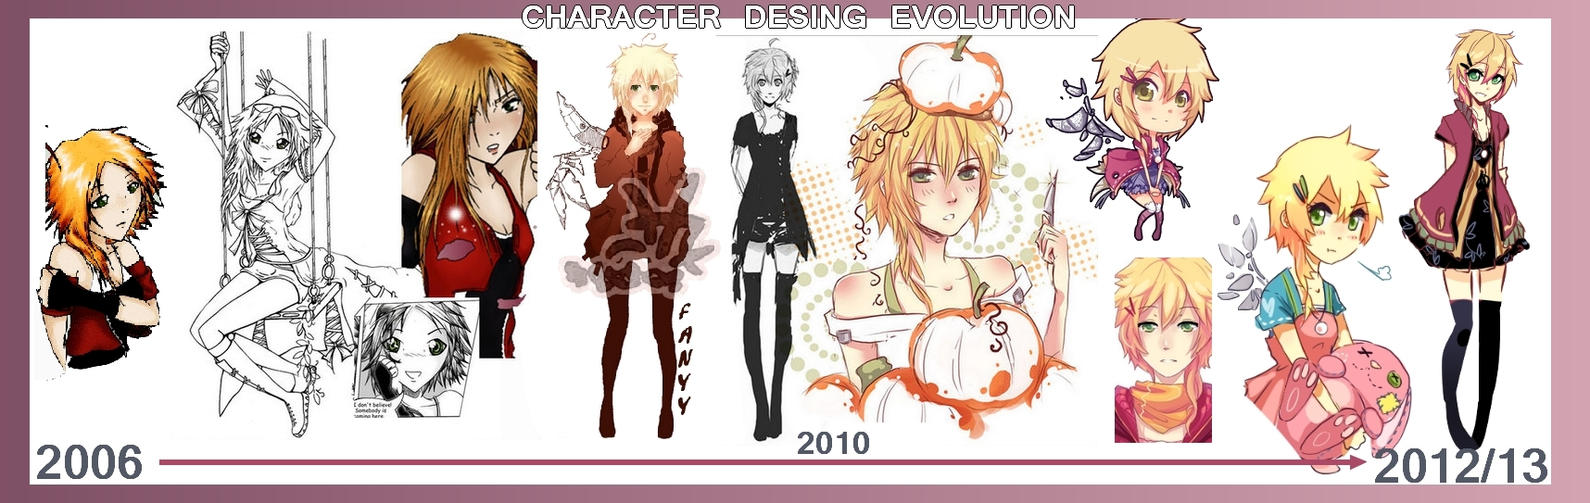 Character Design Evolution : Character design evolution by quiss on deviantart